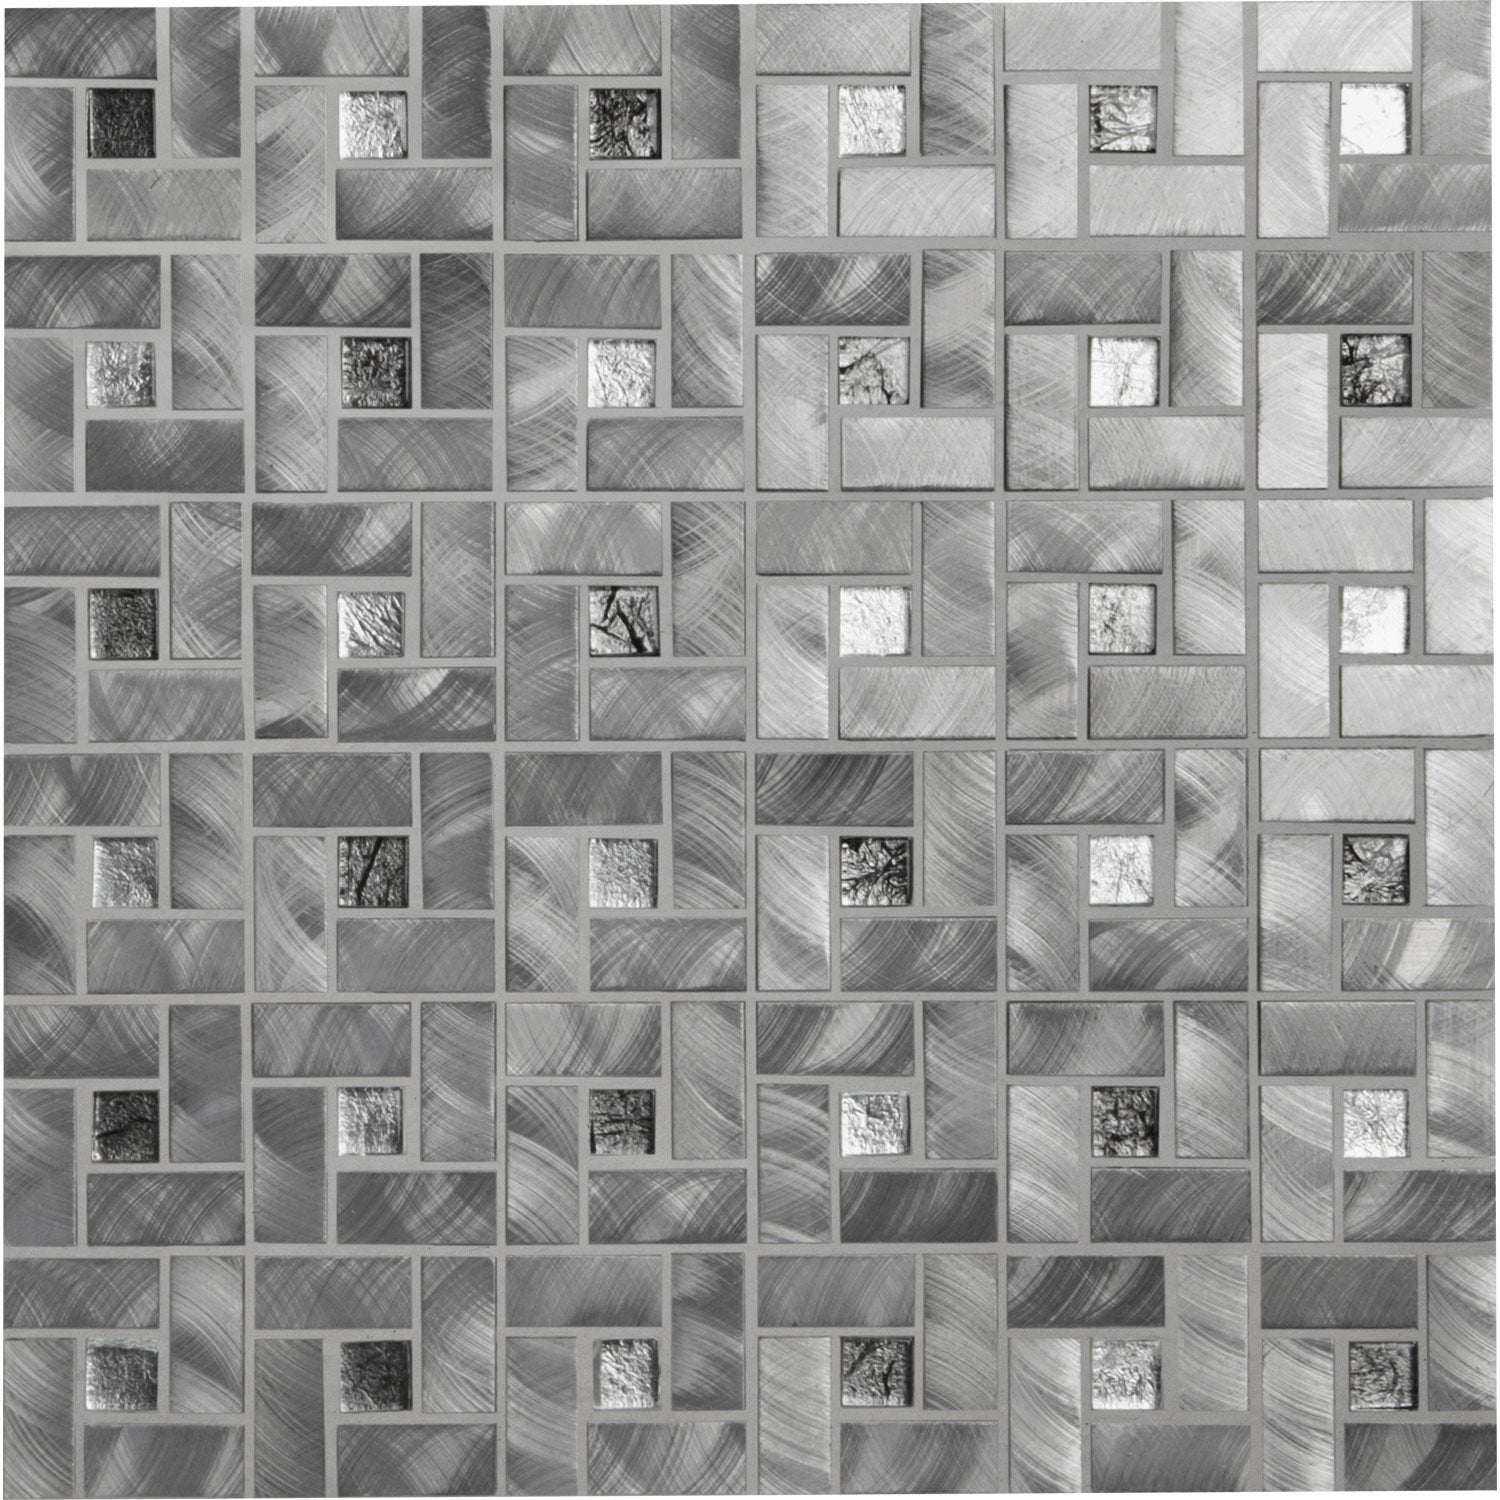 Mosa que square gris leroy merlin for Mosaique travertin leroy merlin